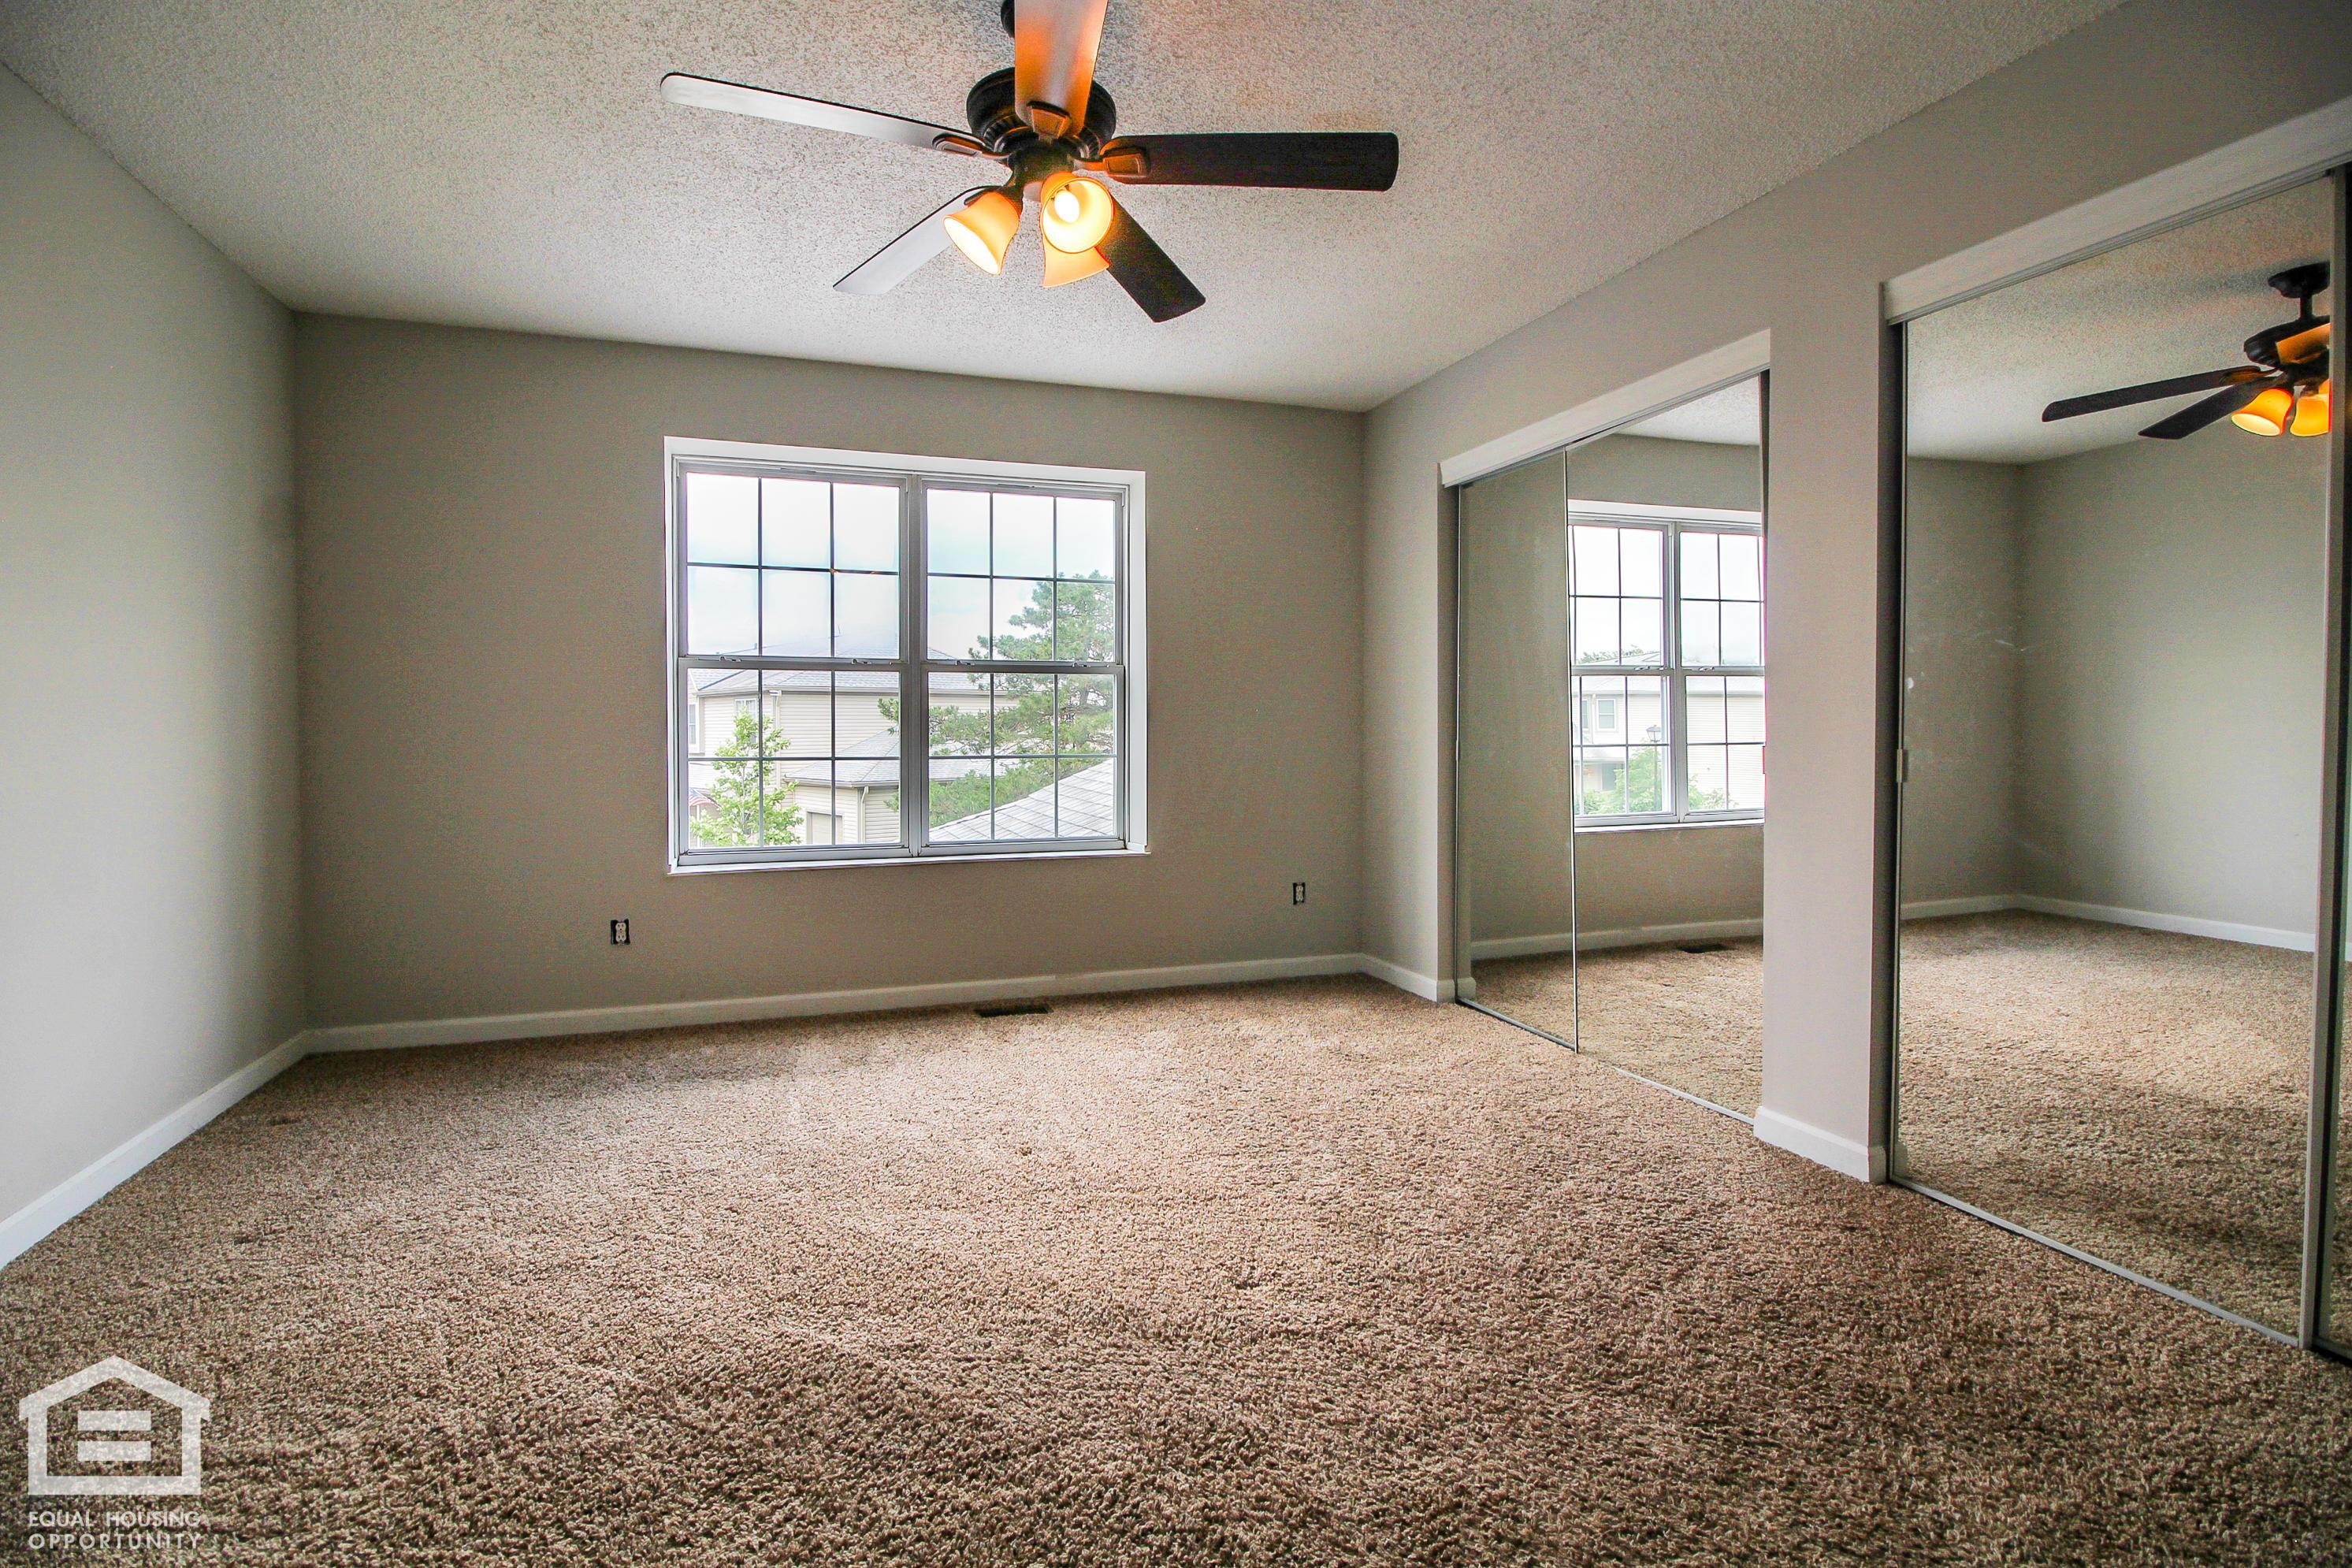 5663 Everbrook Drive, Hilliard, Ohio 43026, 2 Bedrooms Bedrooms, ,4 BathroomsBathrooms,Residential,For Sale,Everbrook,220020651